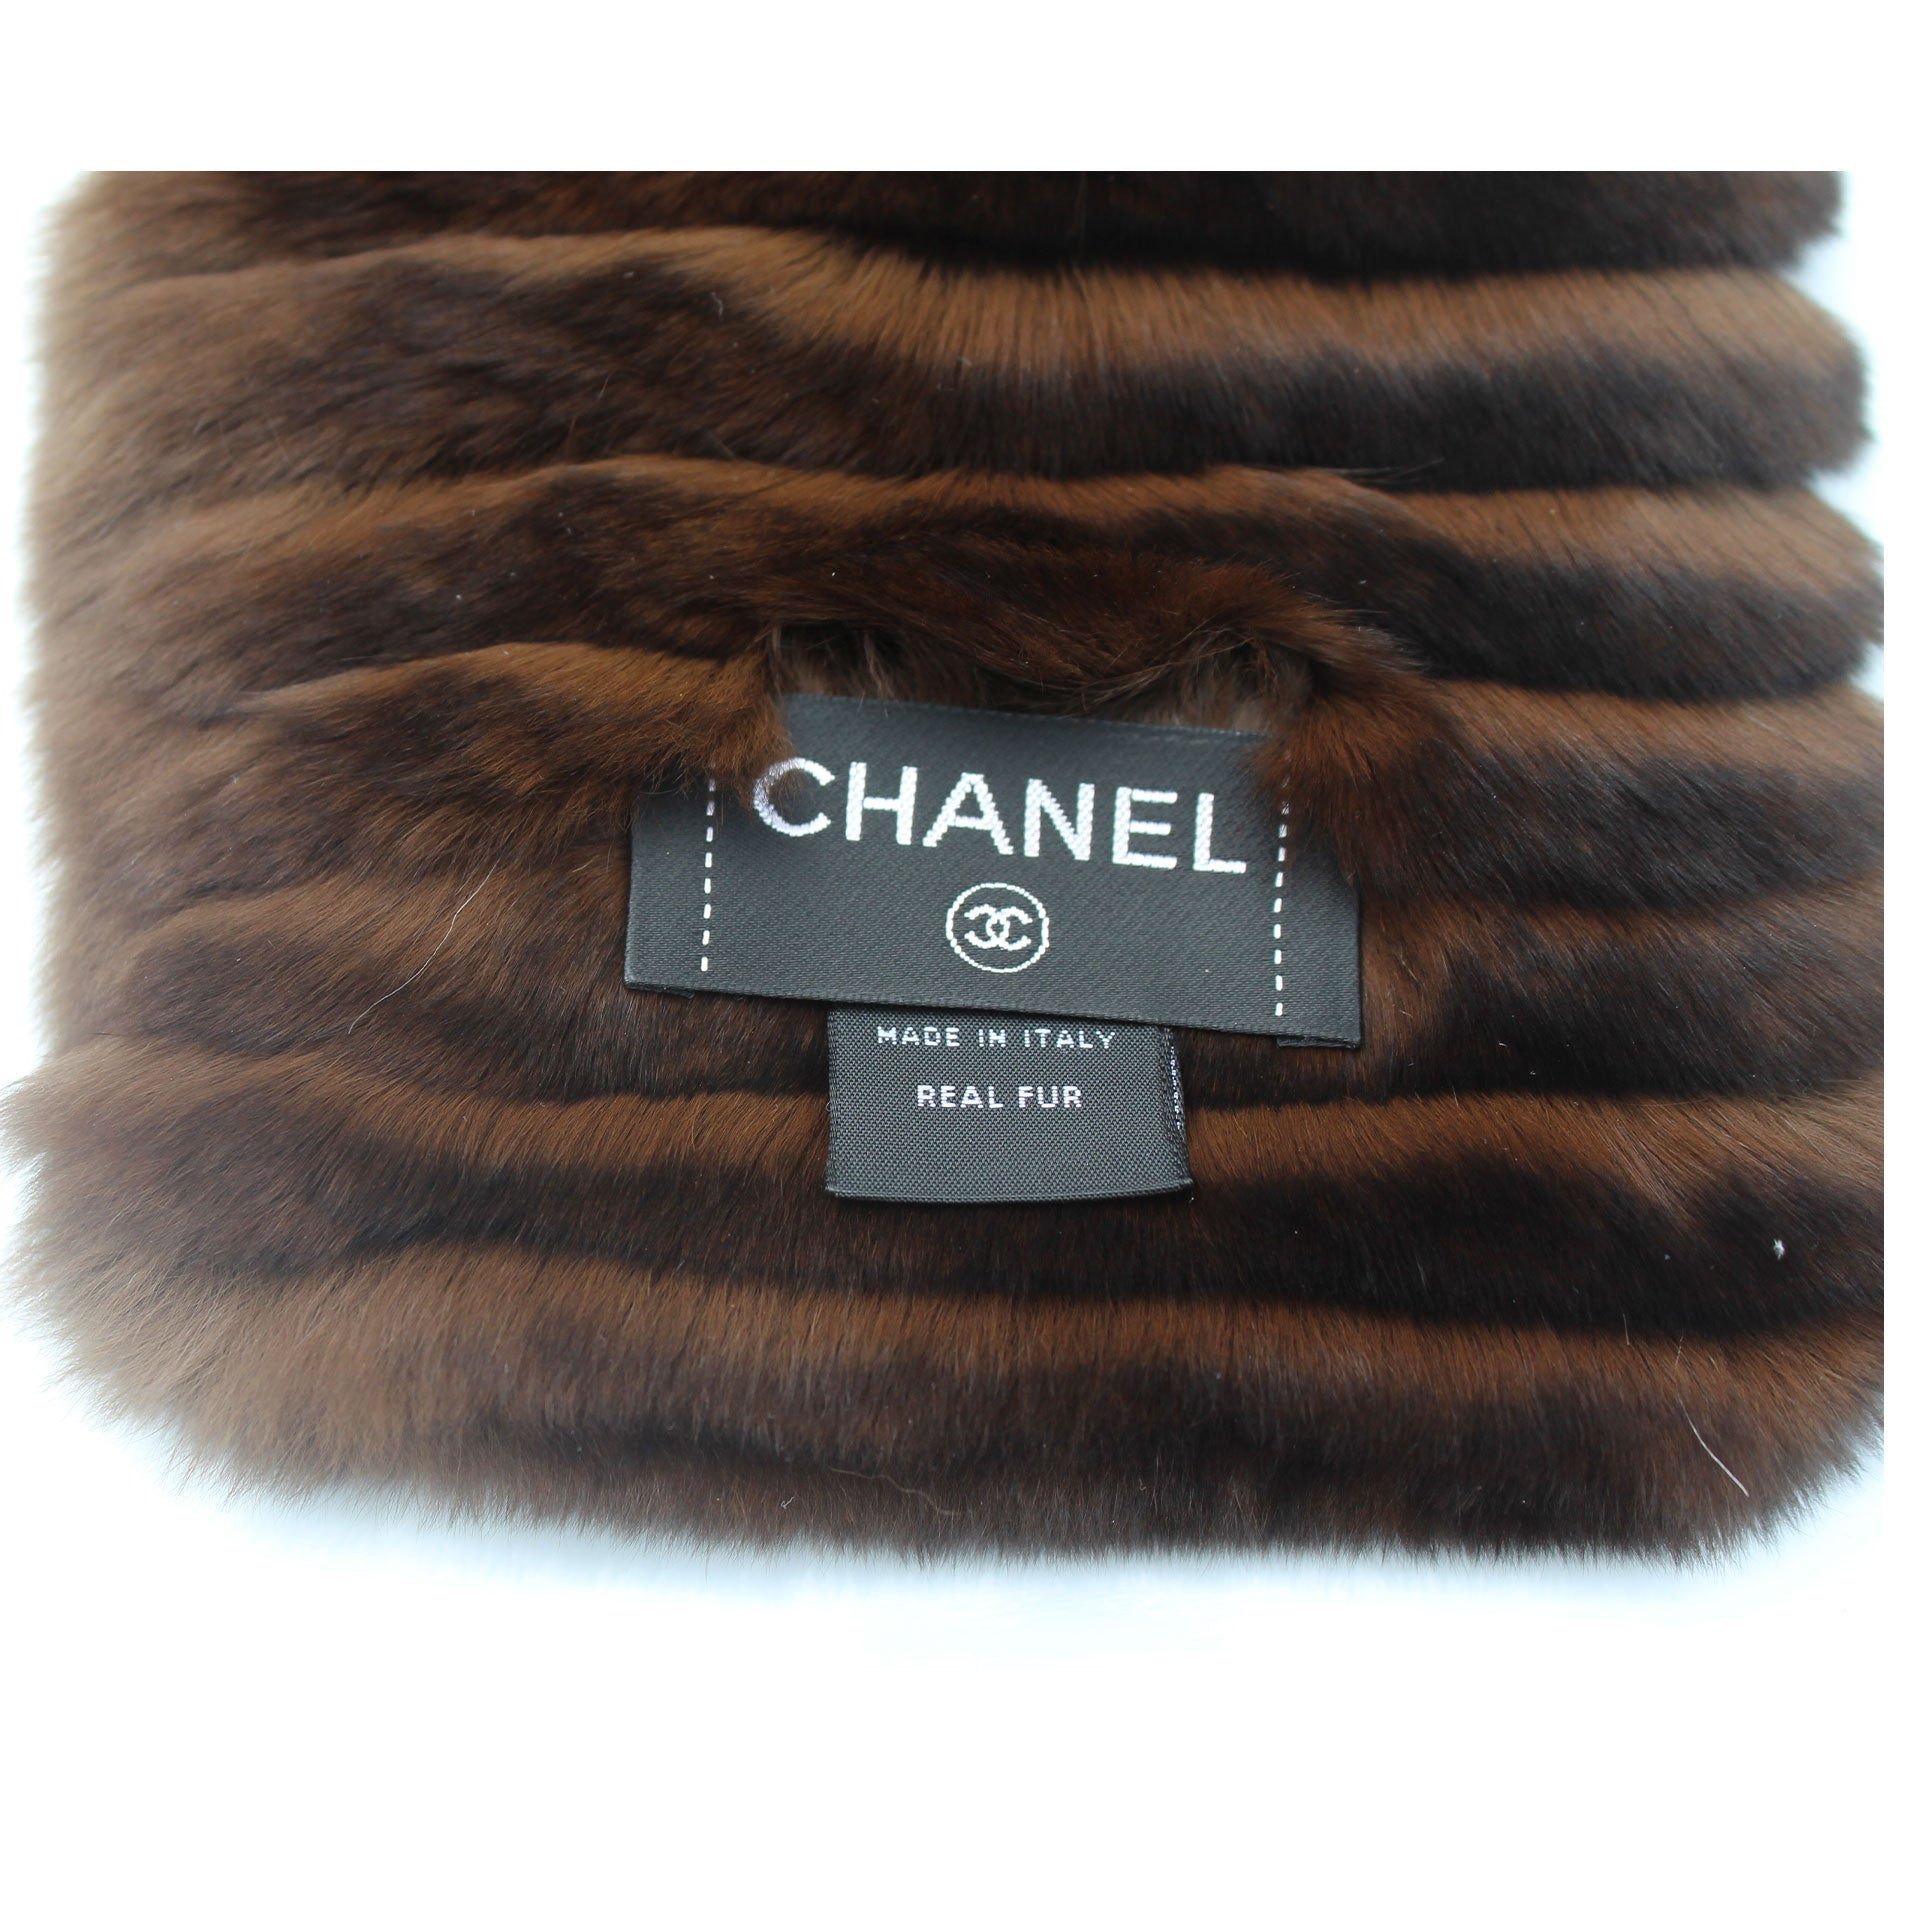 Chanel Brown Orylag Fur Logo Super Soft Warm Winter Scarf/Wrap